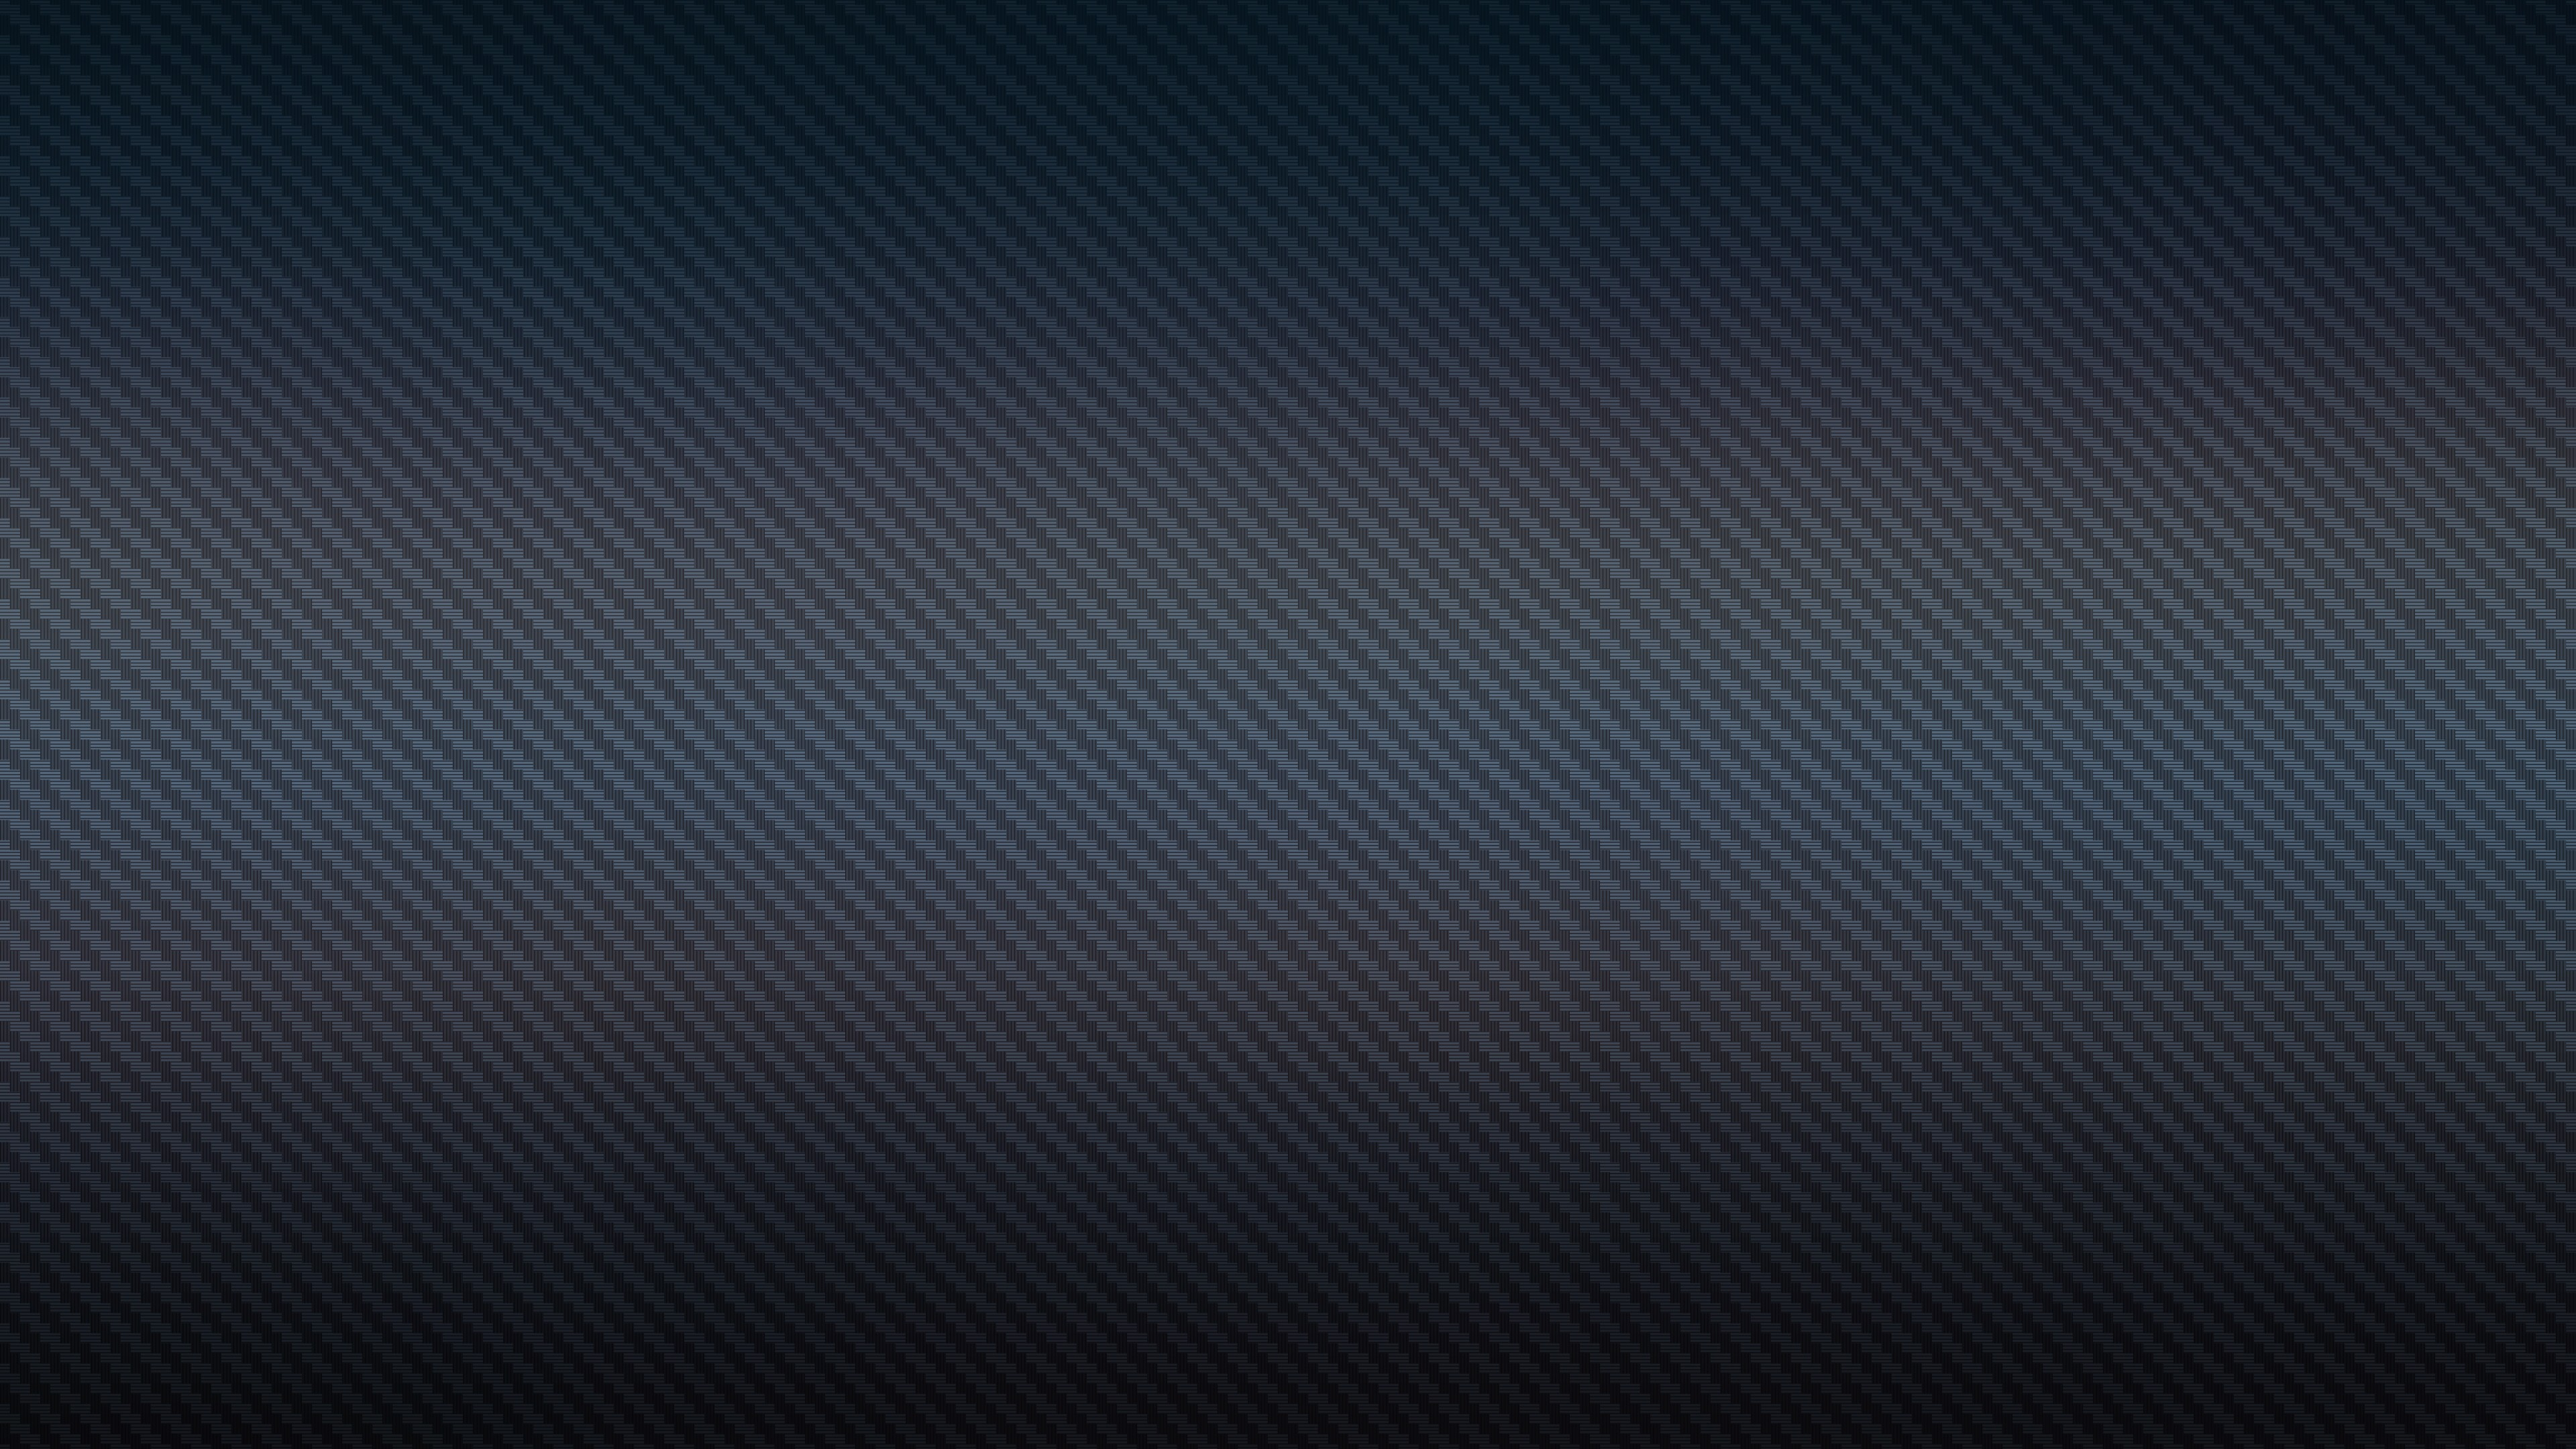 Dark Abstract Pattern 4k, HD Abstract, 4k Wallpapers ...